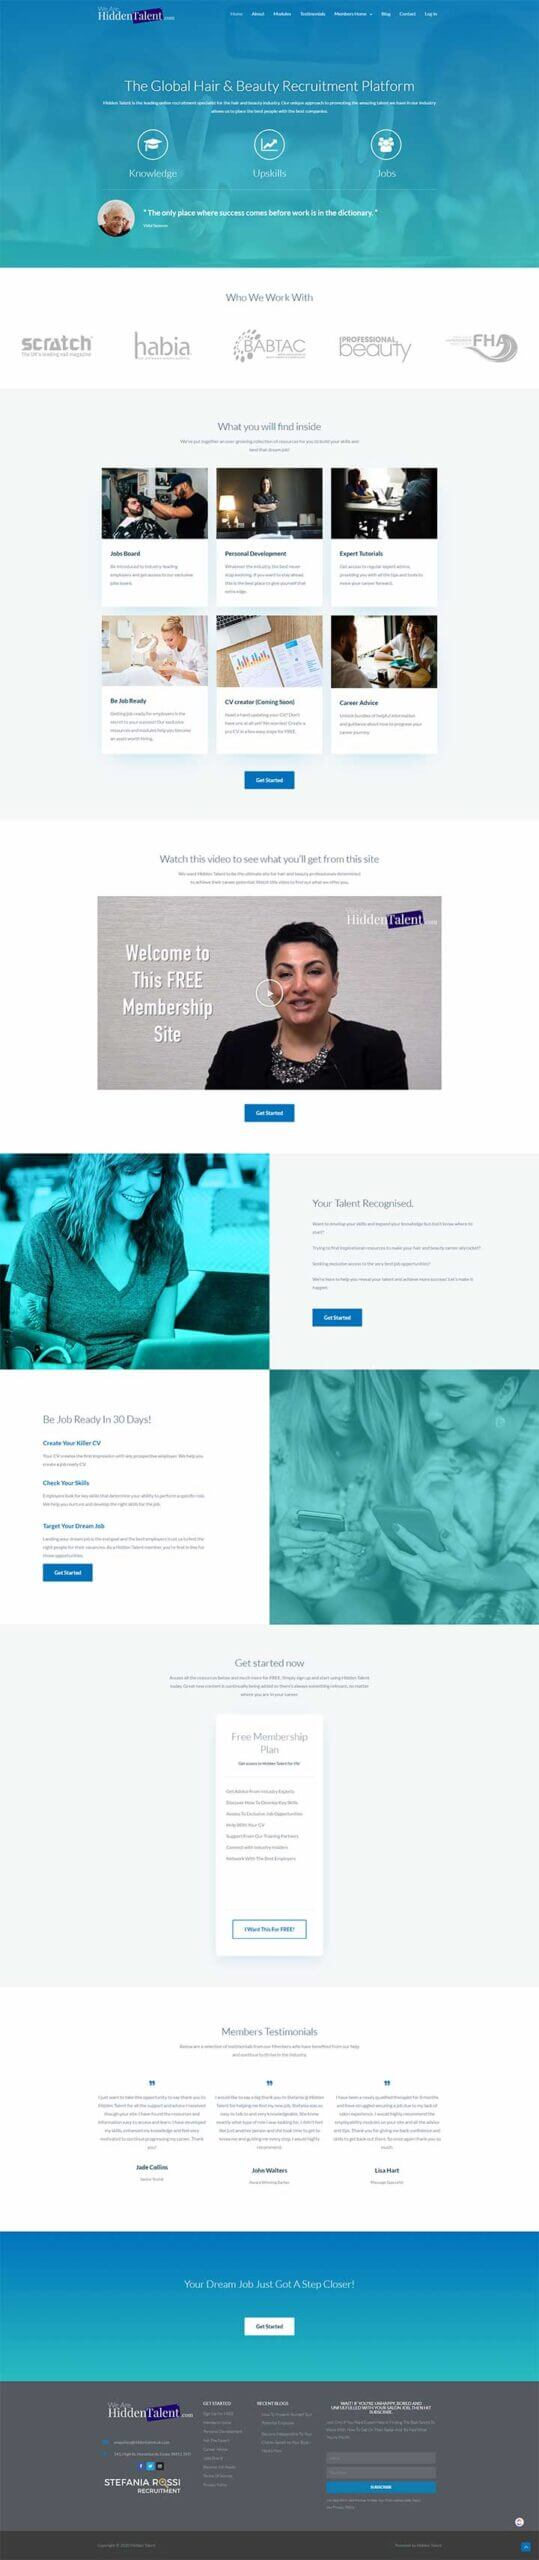 beauty industry recruitment platform website design